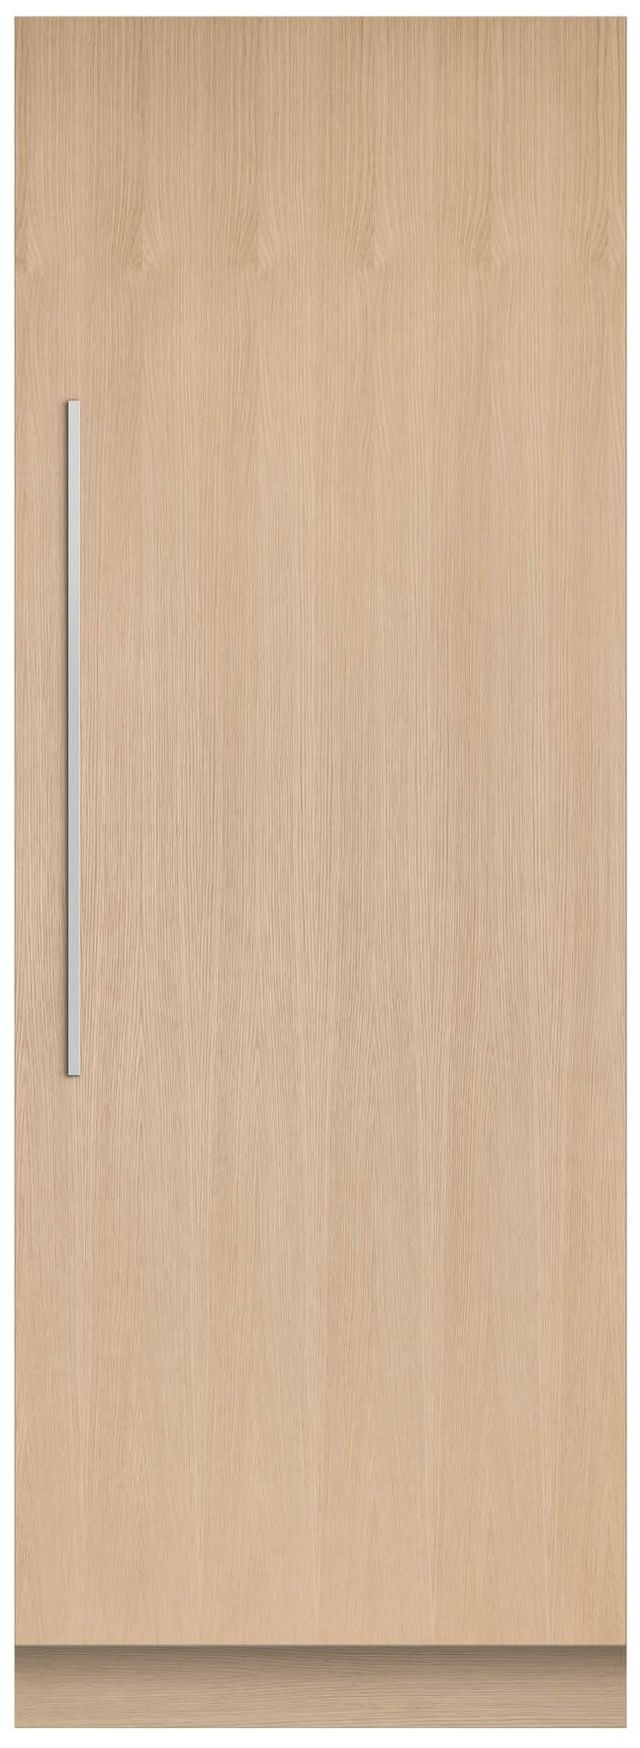 Fisher & Paykel 16.3 Cu. Ft. Built in All Refrigerator-Panel Ready-RS3084SR1